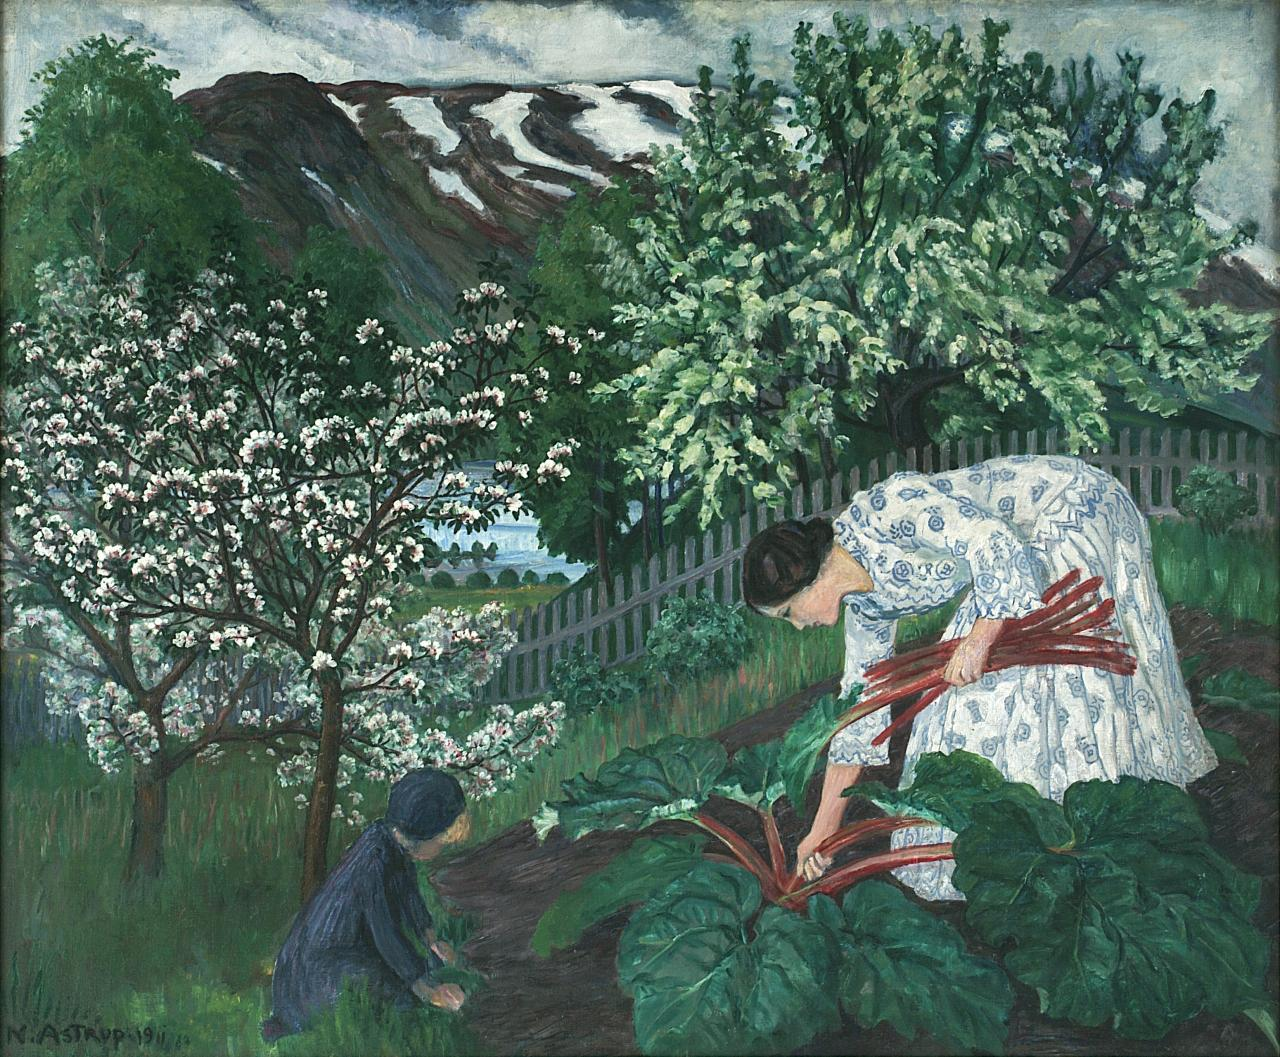 'Rabarbra' or 'Rhubarb' shows Astrup's wife Engel picking crisp stalks with her child, most likely Kari. Image: WikiMedia.org.